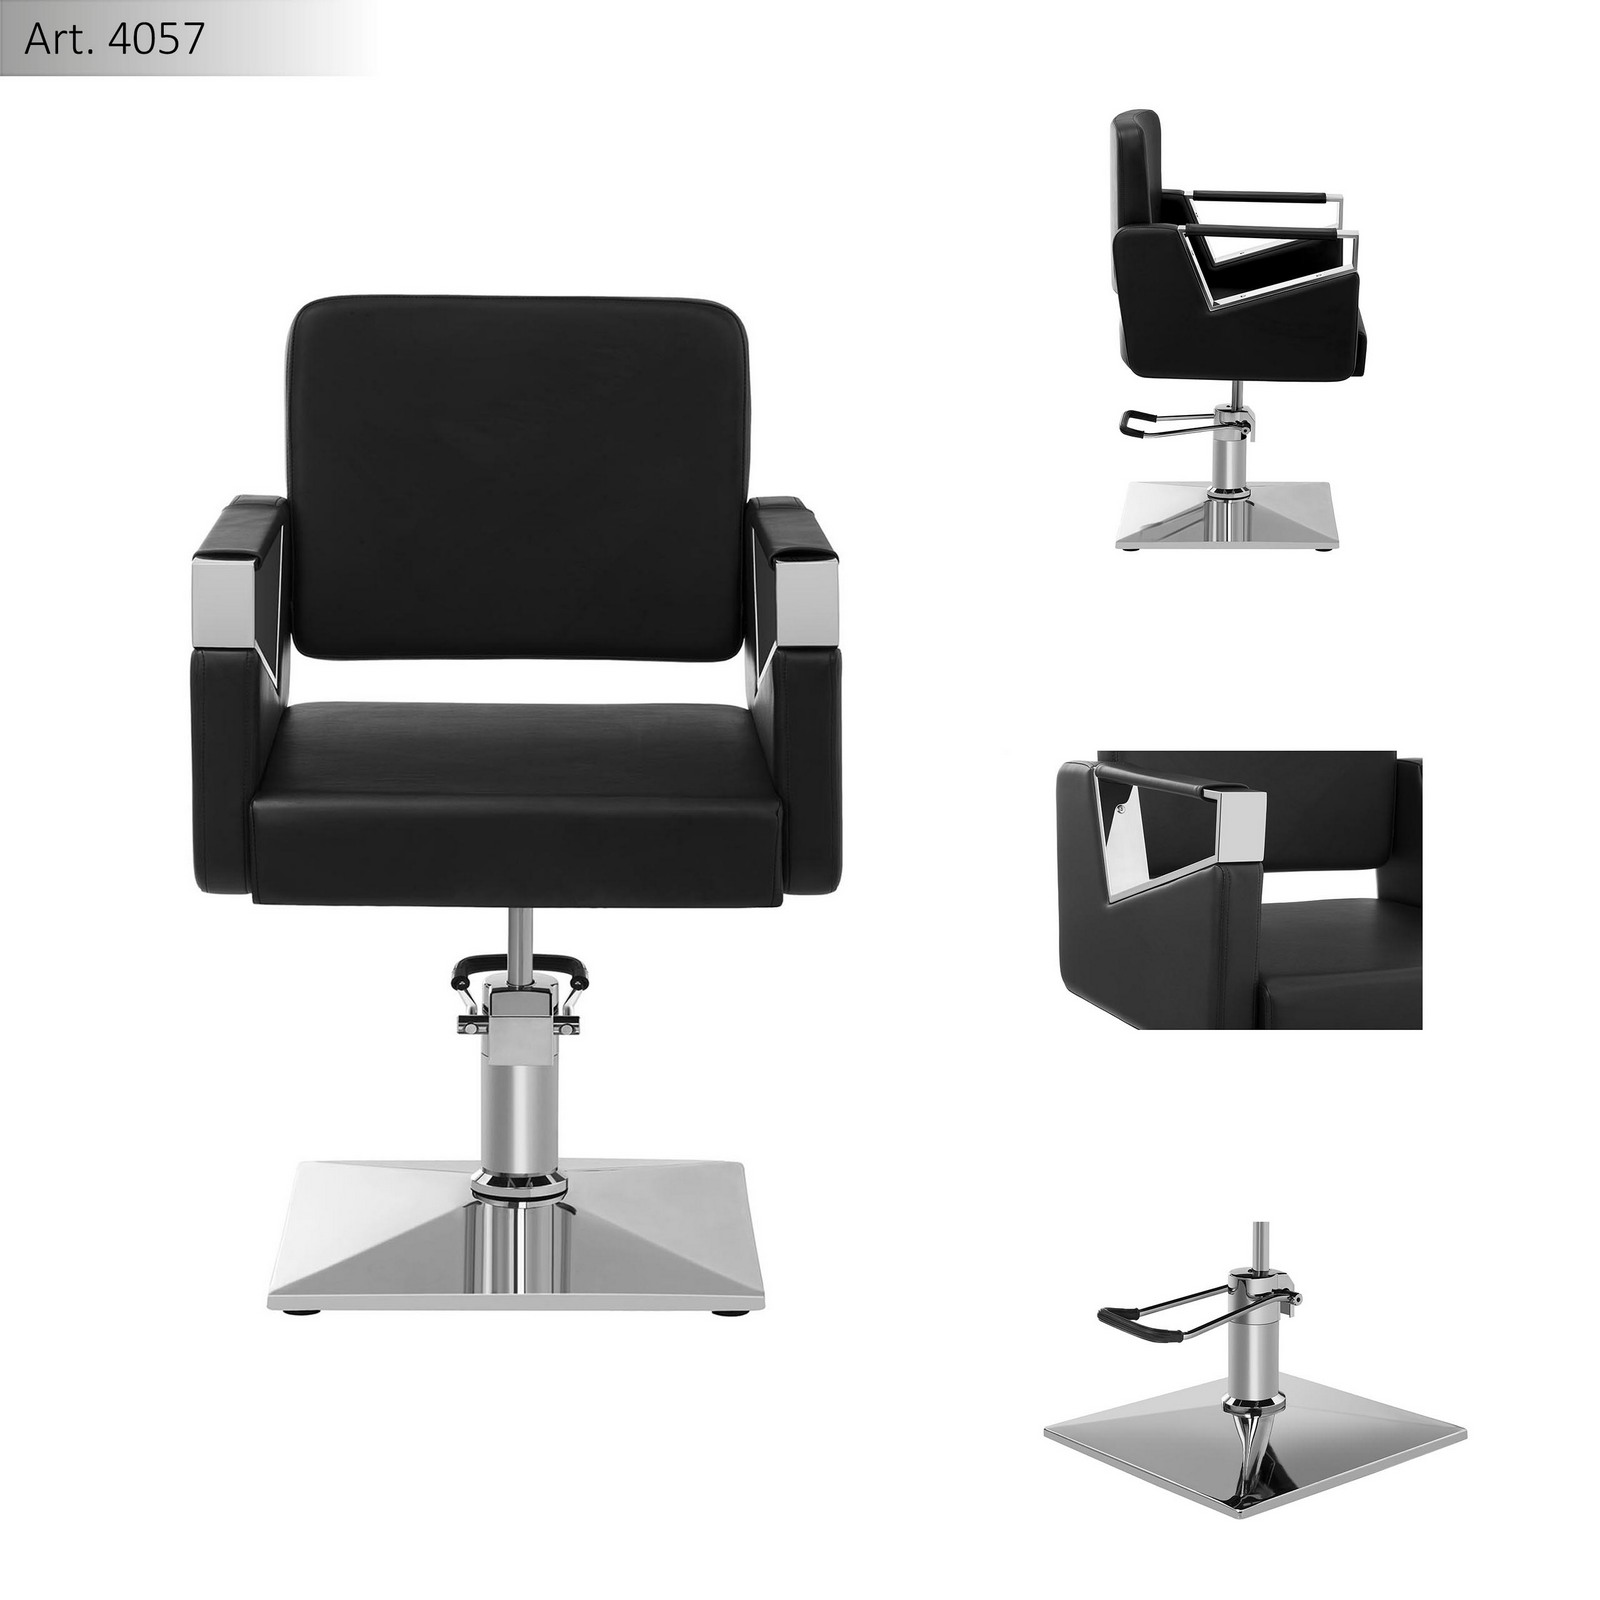 mobile barber chair with adjustable legs salon seat rotatable hairdresser